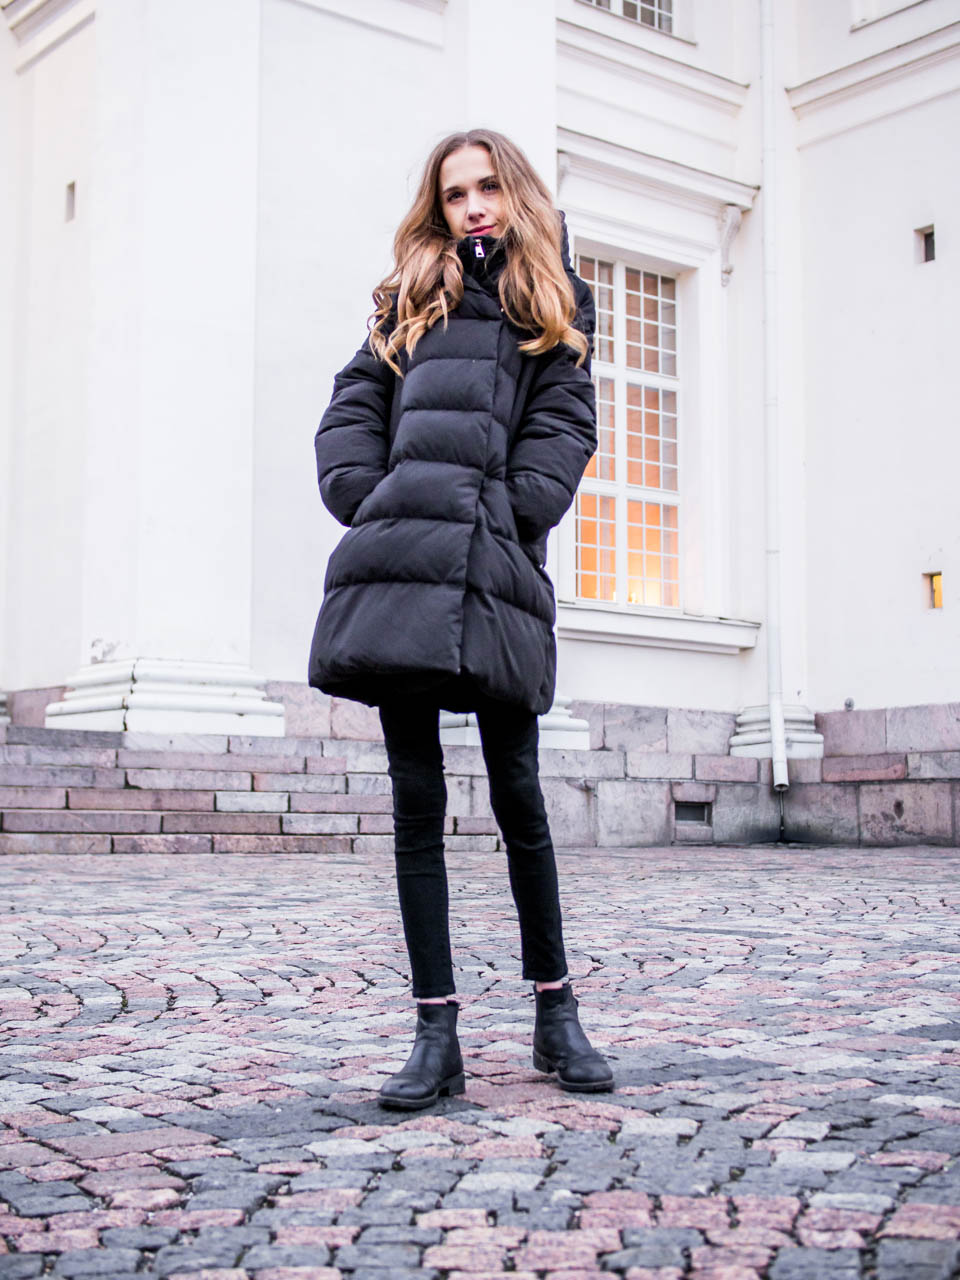 All black winter outfit with puffer coat - Kokomusta asu talveen + paksu toppatakki